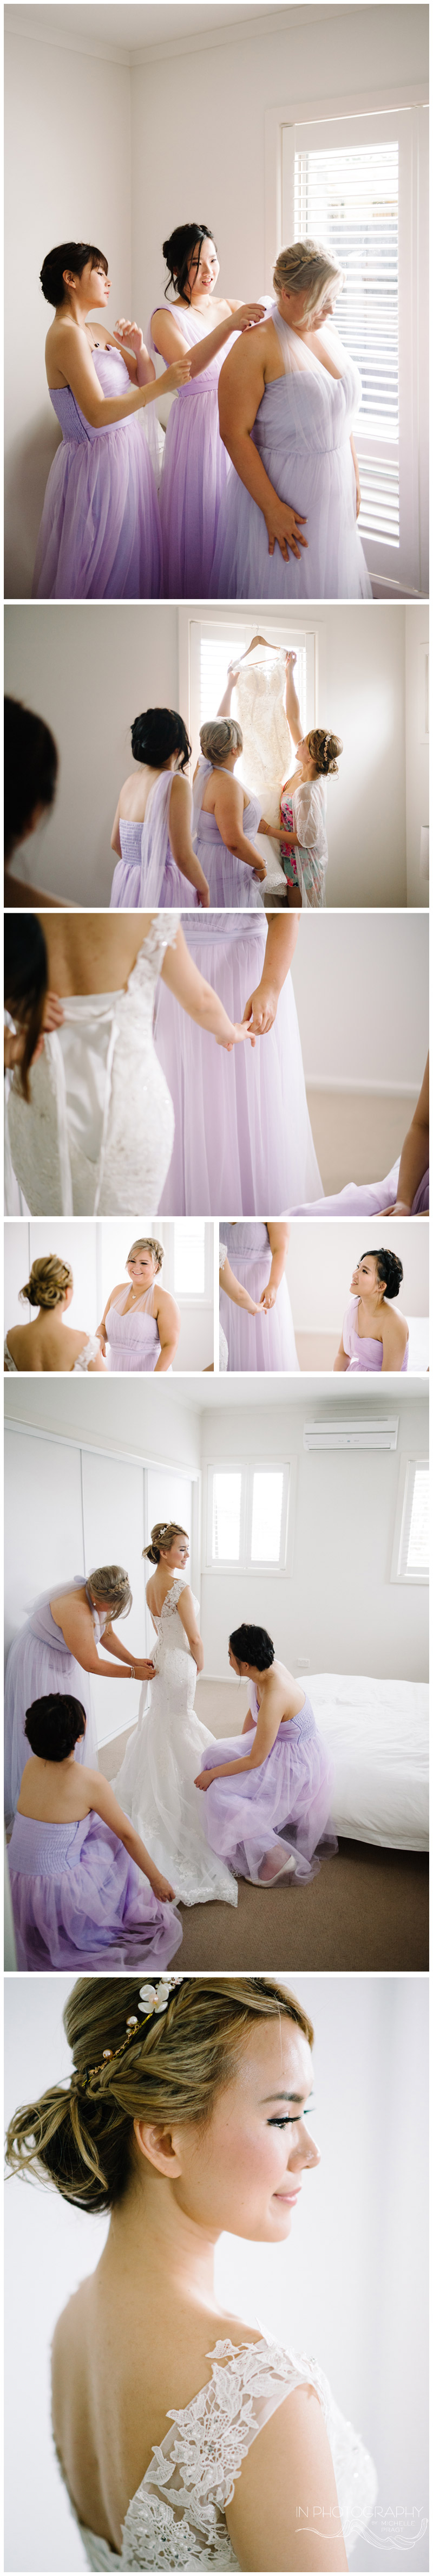 wedding photography by Mornington Peninsula photographer